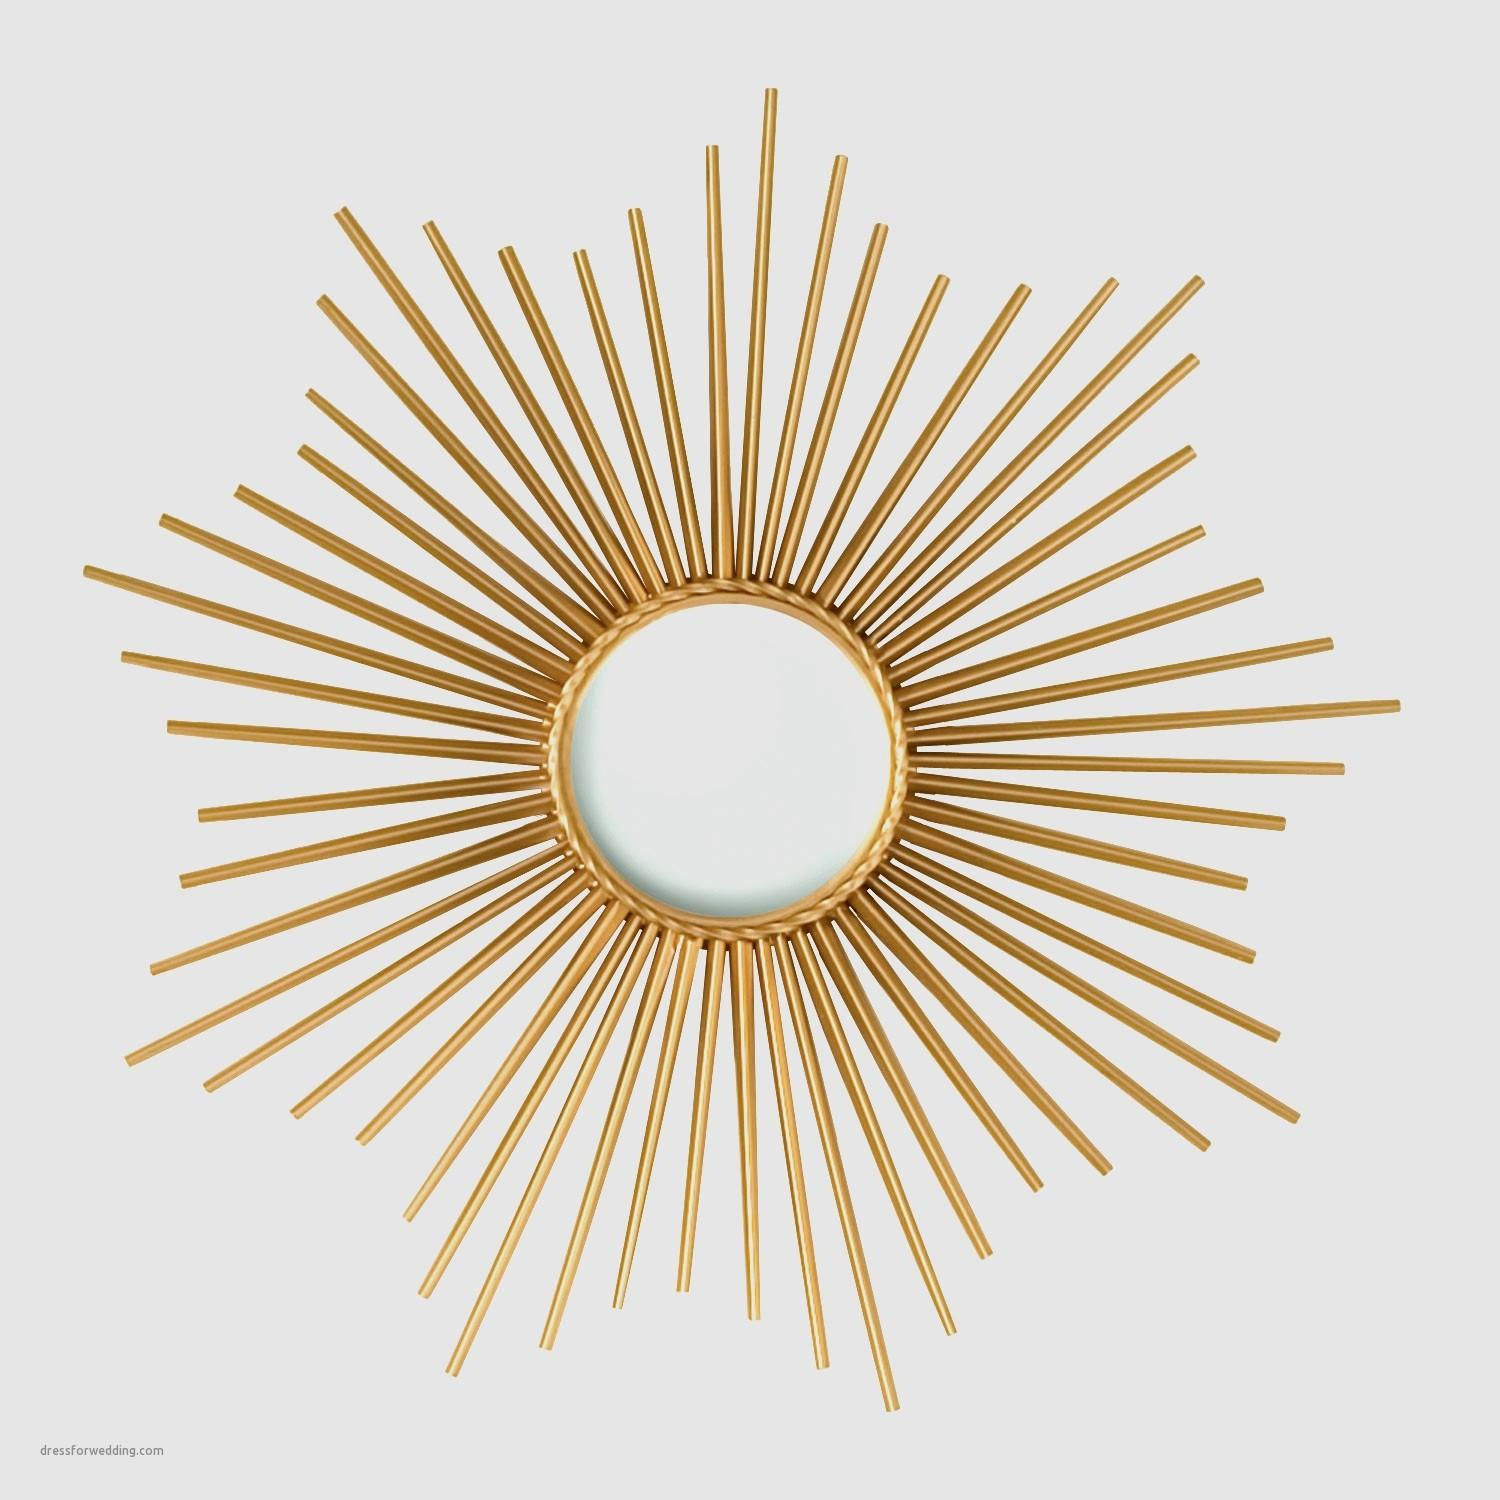 Large Gold Sunburst Mirror Inspirational Decorating